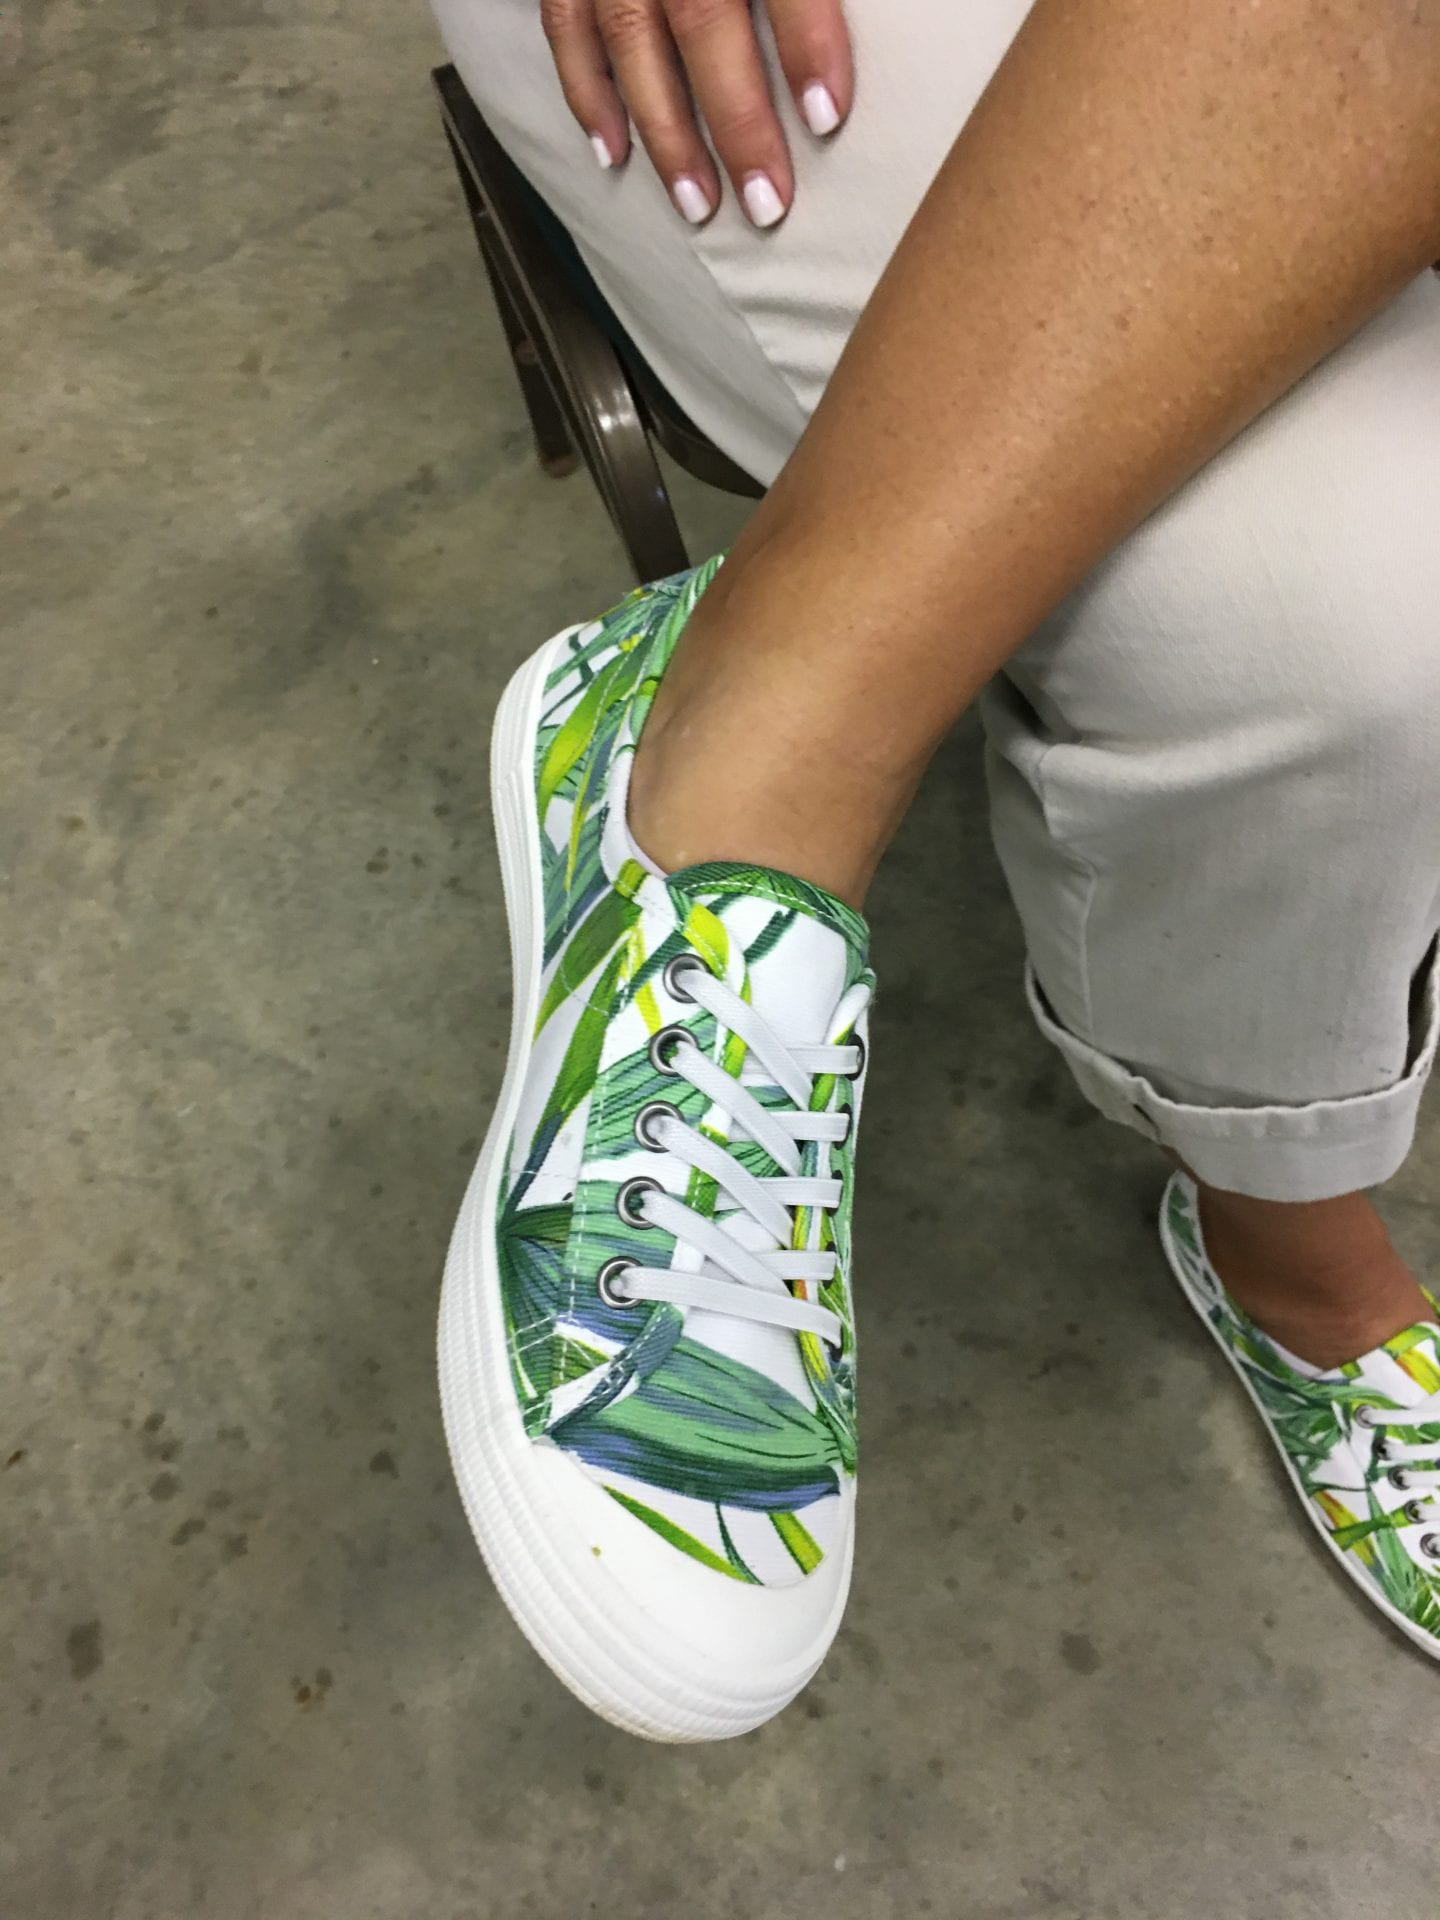 Shoes with Herbs on them